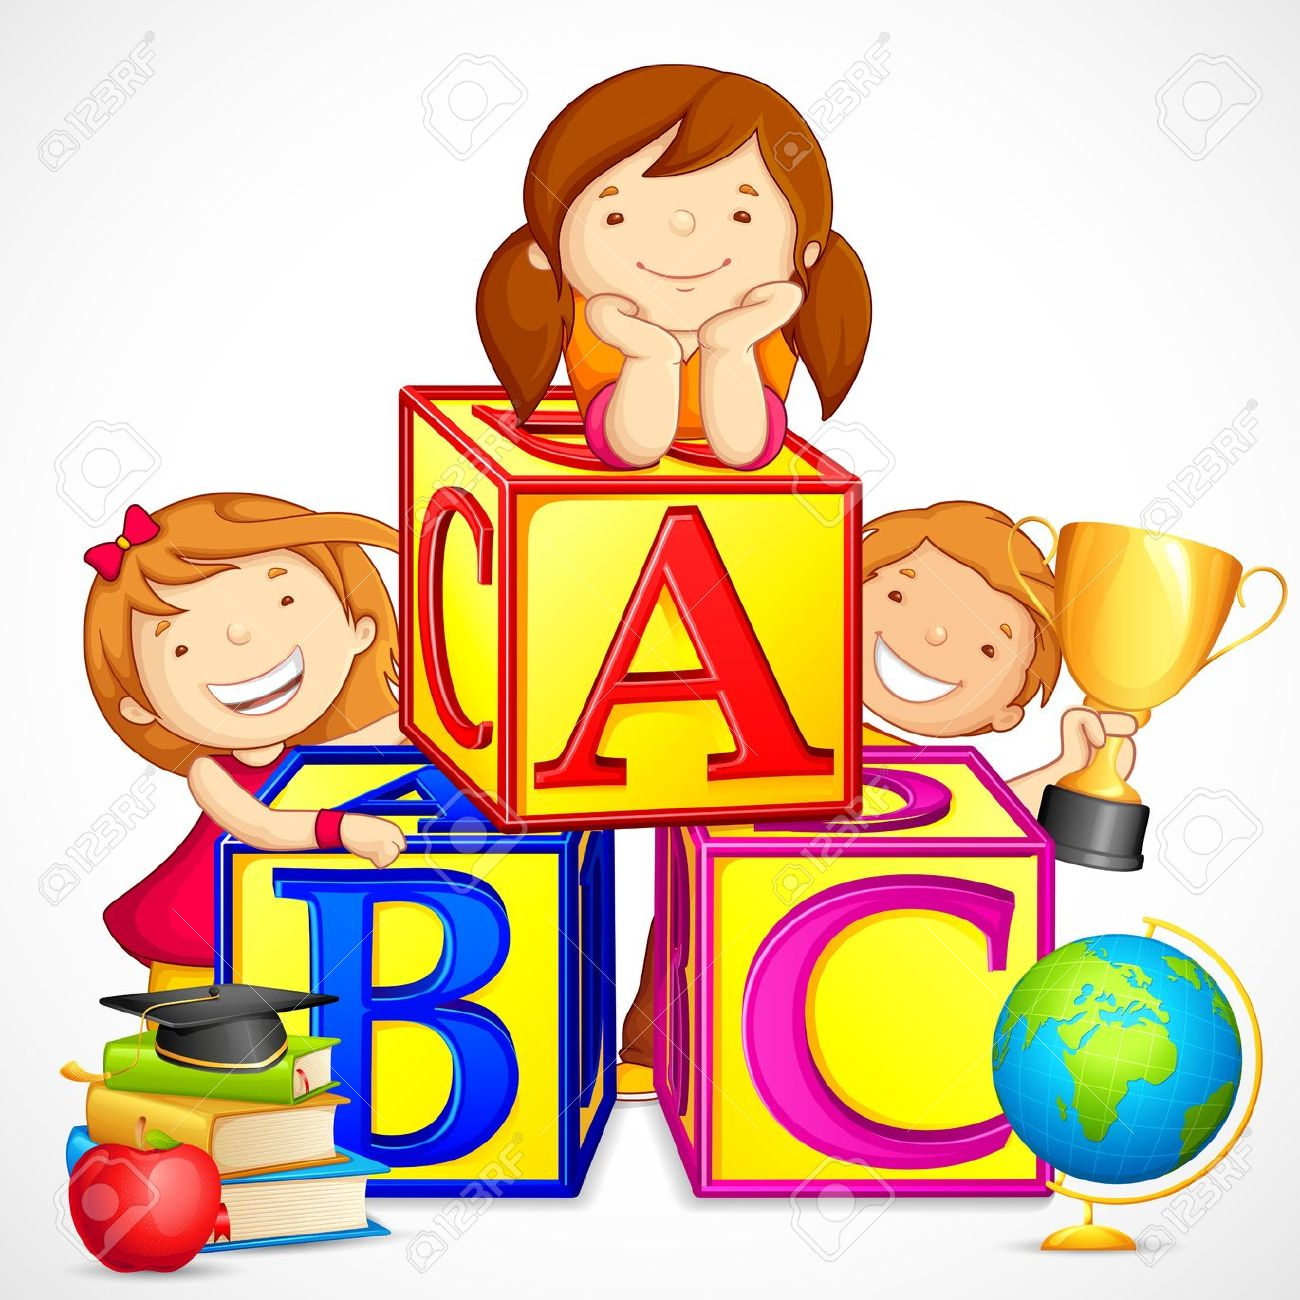 Abc clipart for kids image black and white stock Kids learning abc clipart - ClipartFox image black and white stock